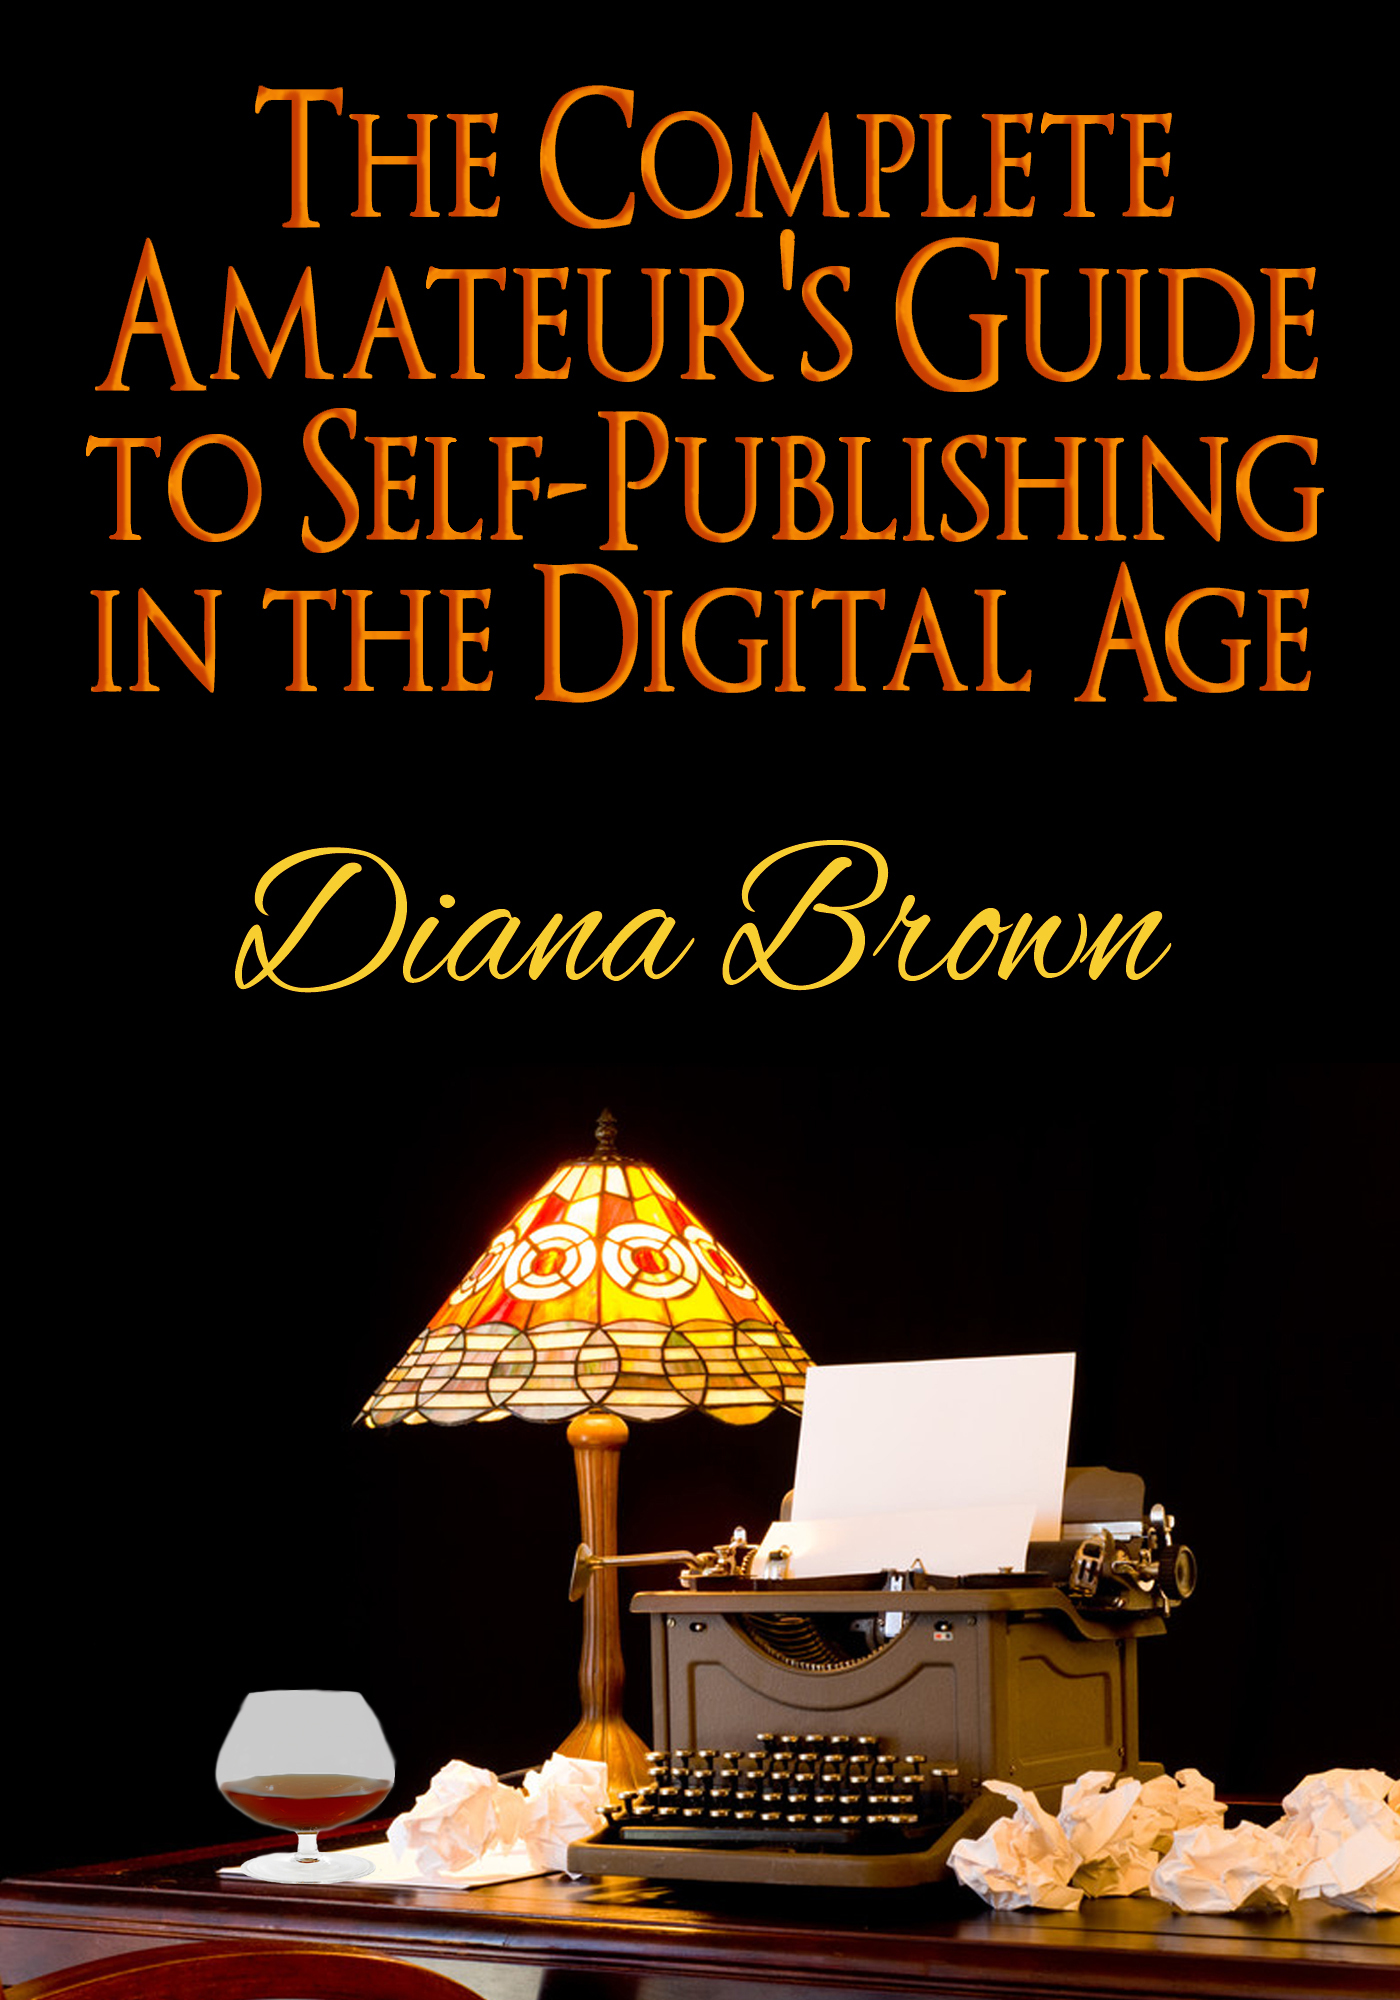 The Complete Amateur's Guide to Self-Publishing in the Digital Age